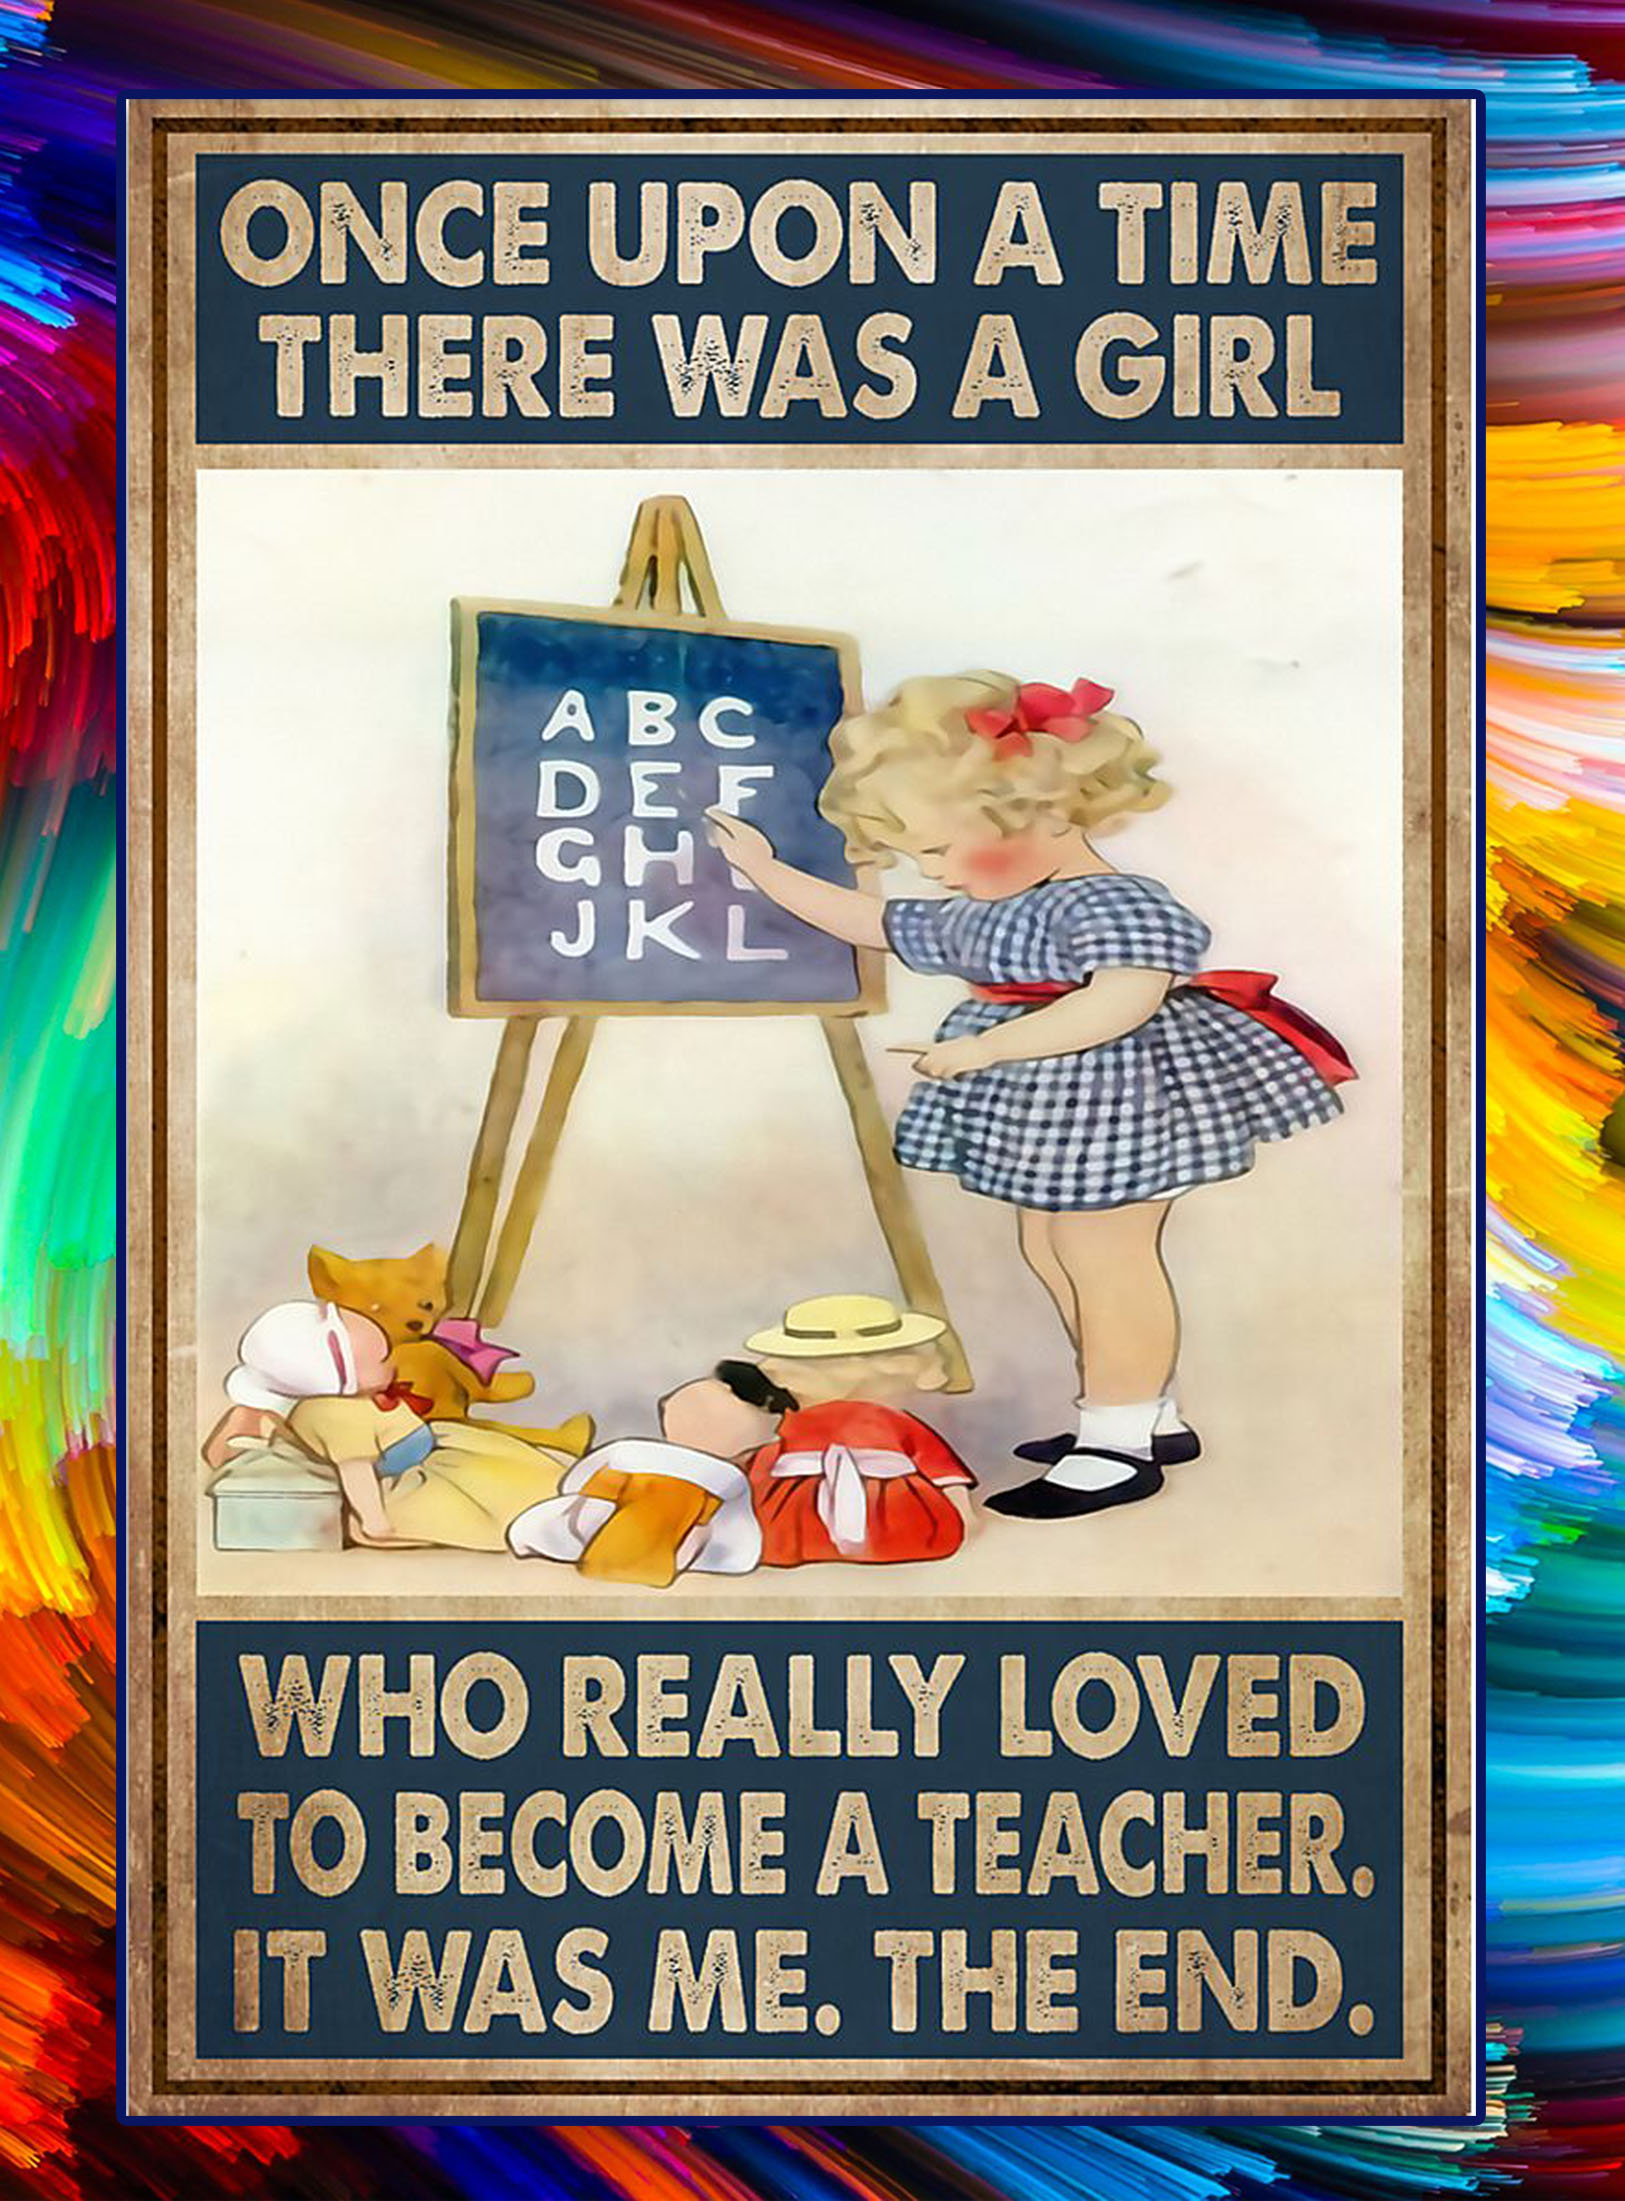 Once upon a time there was a girl who really loved to become a teacher poster - A3